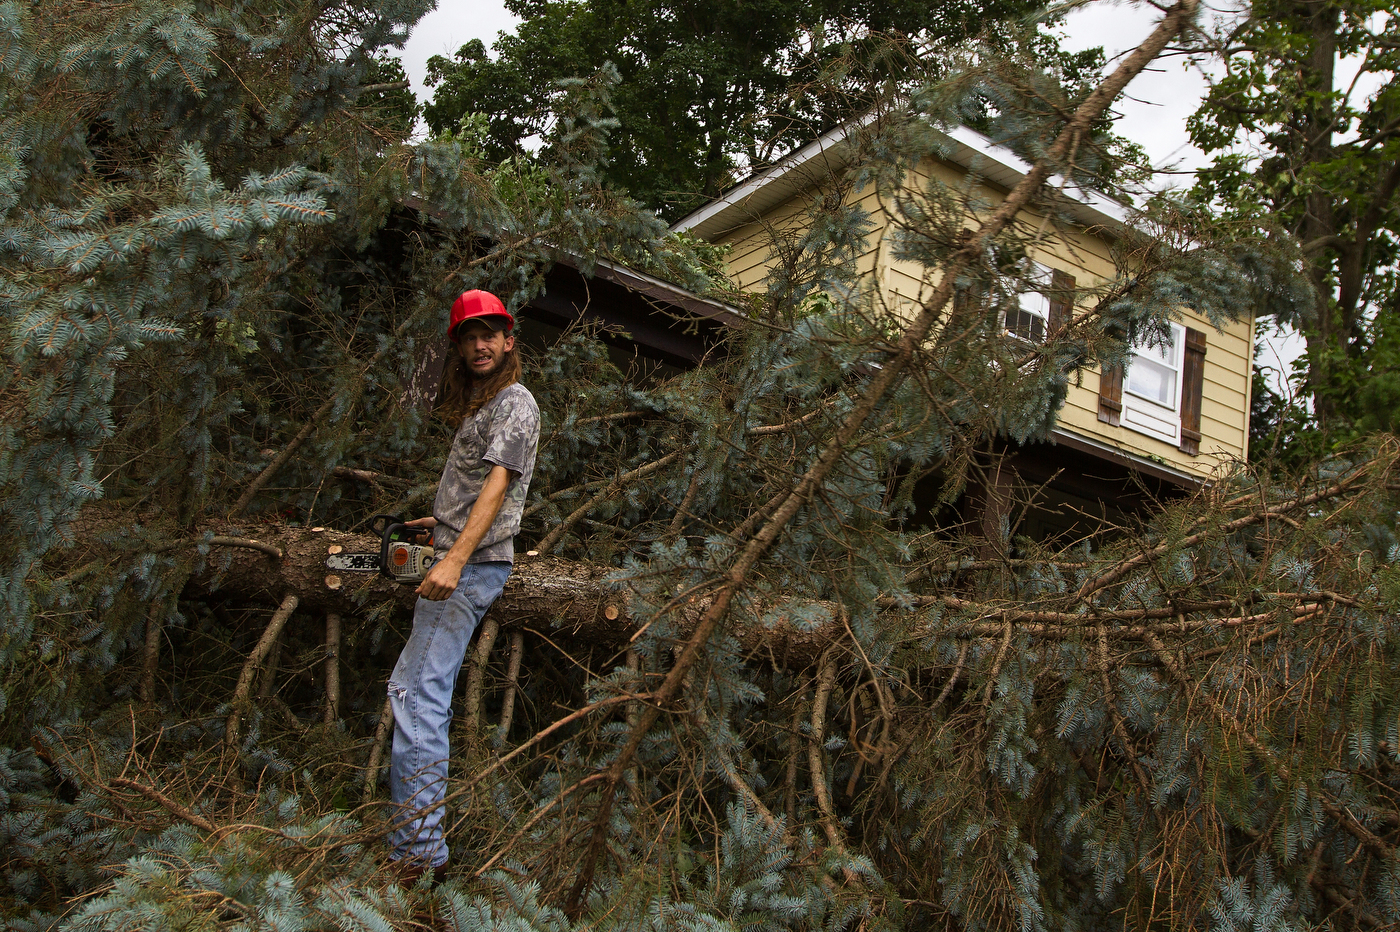 Lamar Sanford, 4 Seasons Tree Removal, works at a property on Monroe St. and Division St. in Bangor, Mich. Sunday, Aug. 21, 2016. A tornado damaged homes throughout the area.